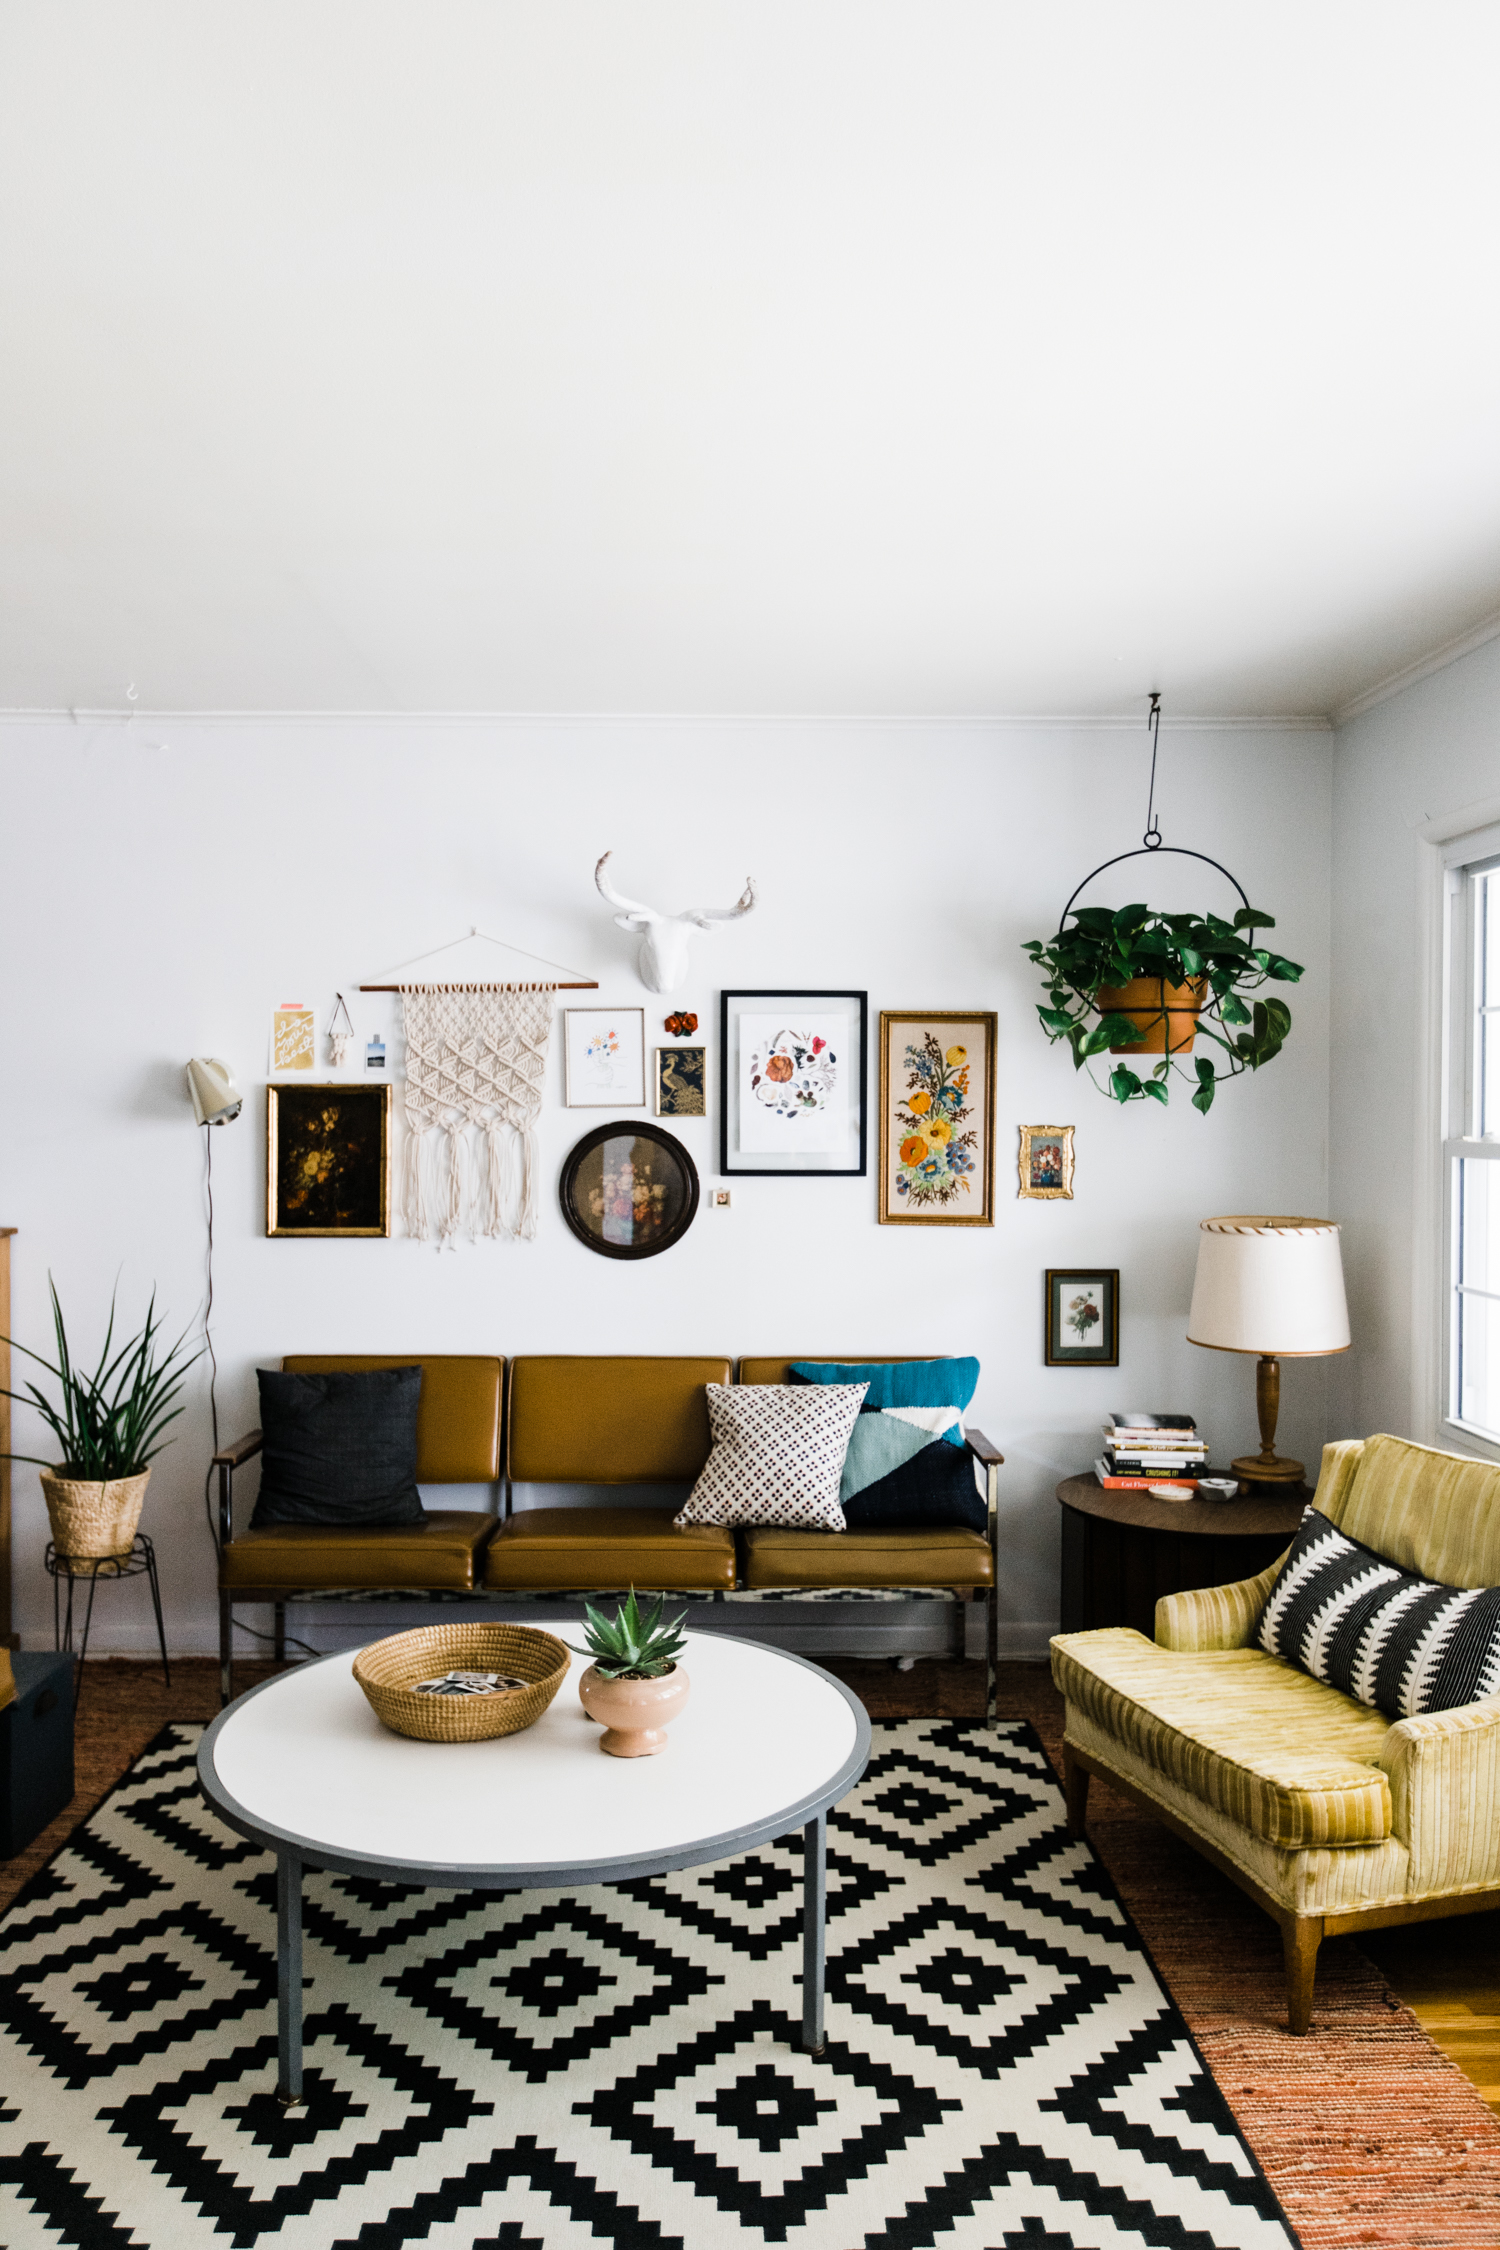 Abbey-Wells-Home-eclectic-colorful-home-WEB-71.jpg